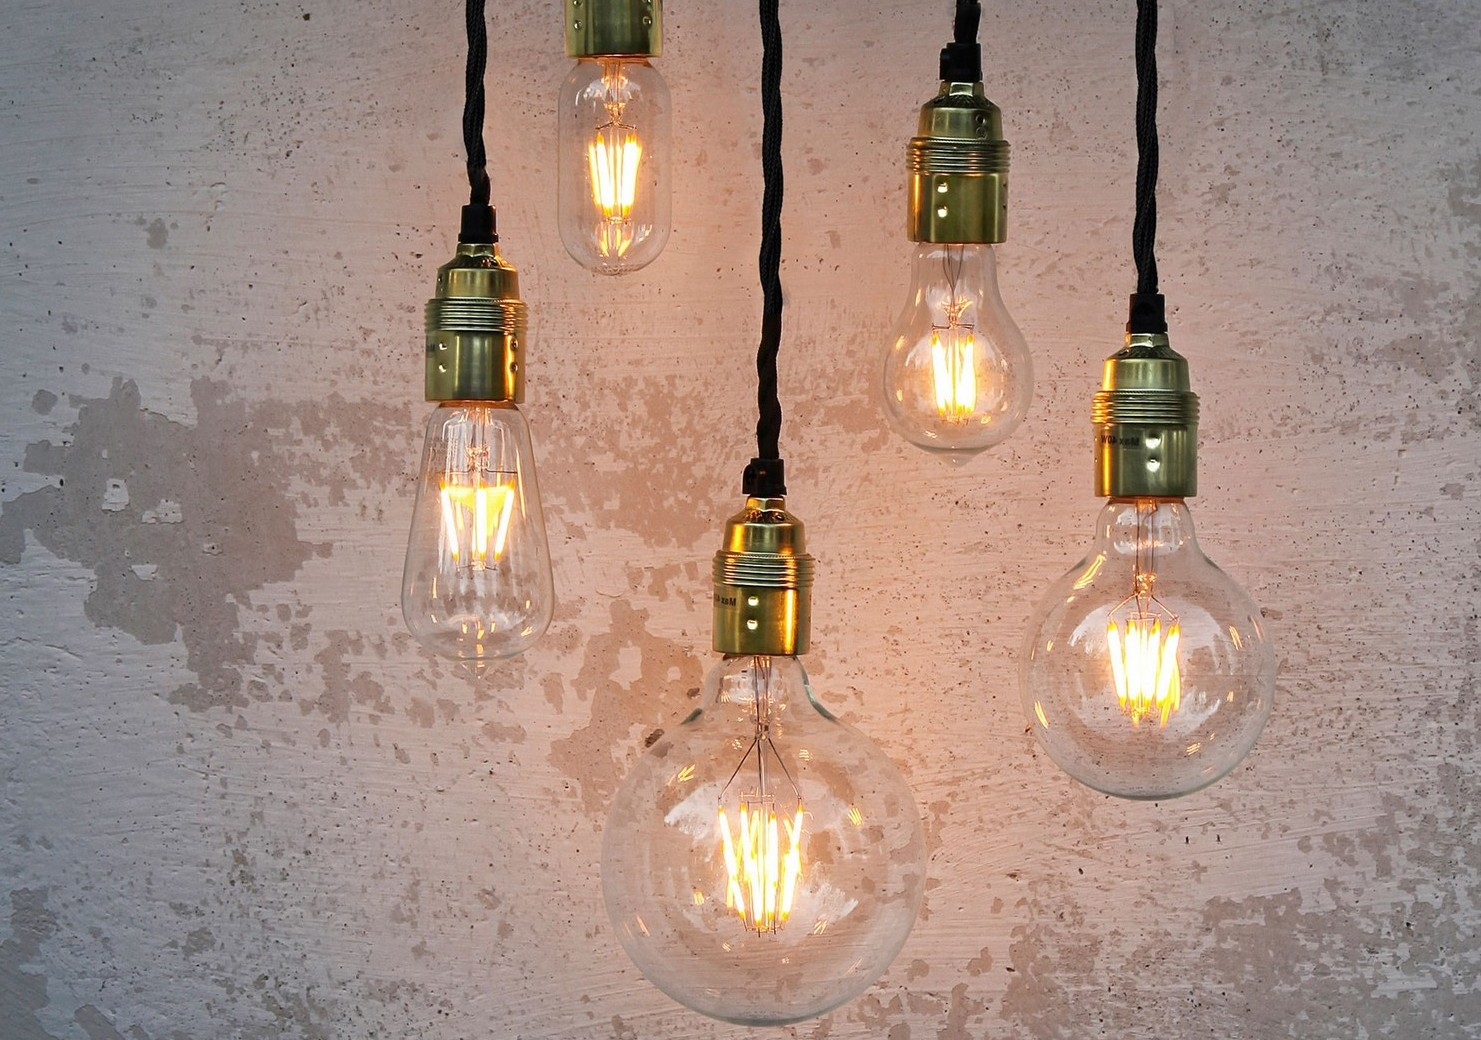 Choosing The Light Bulb Pros And Cons